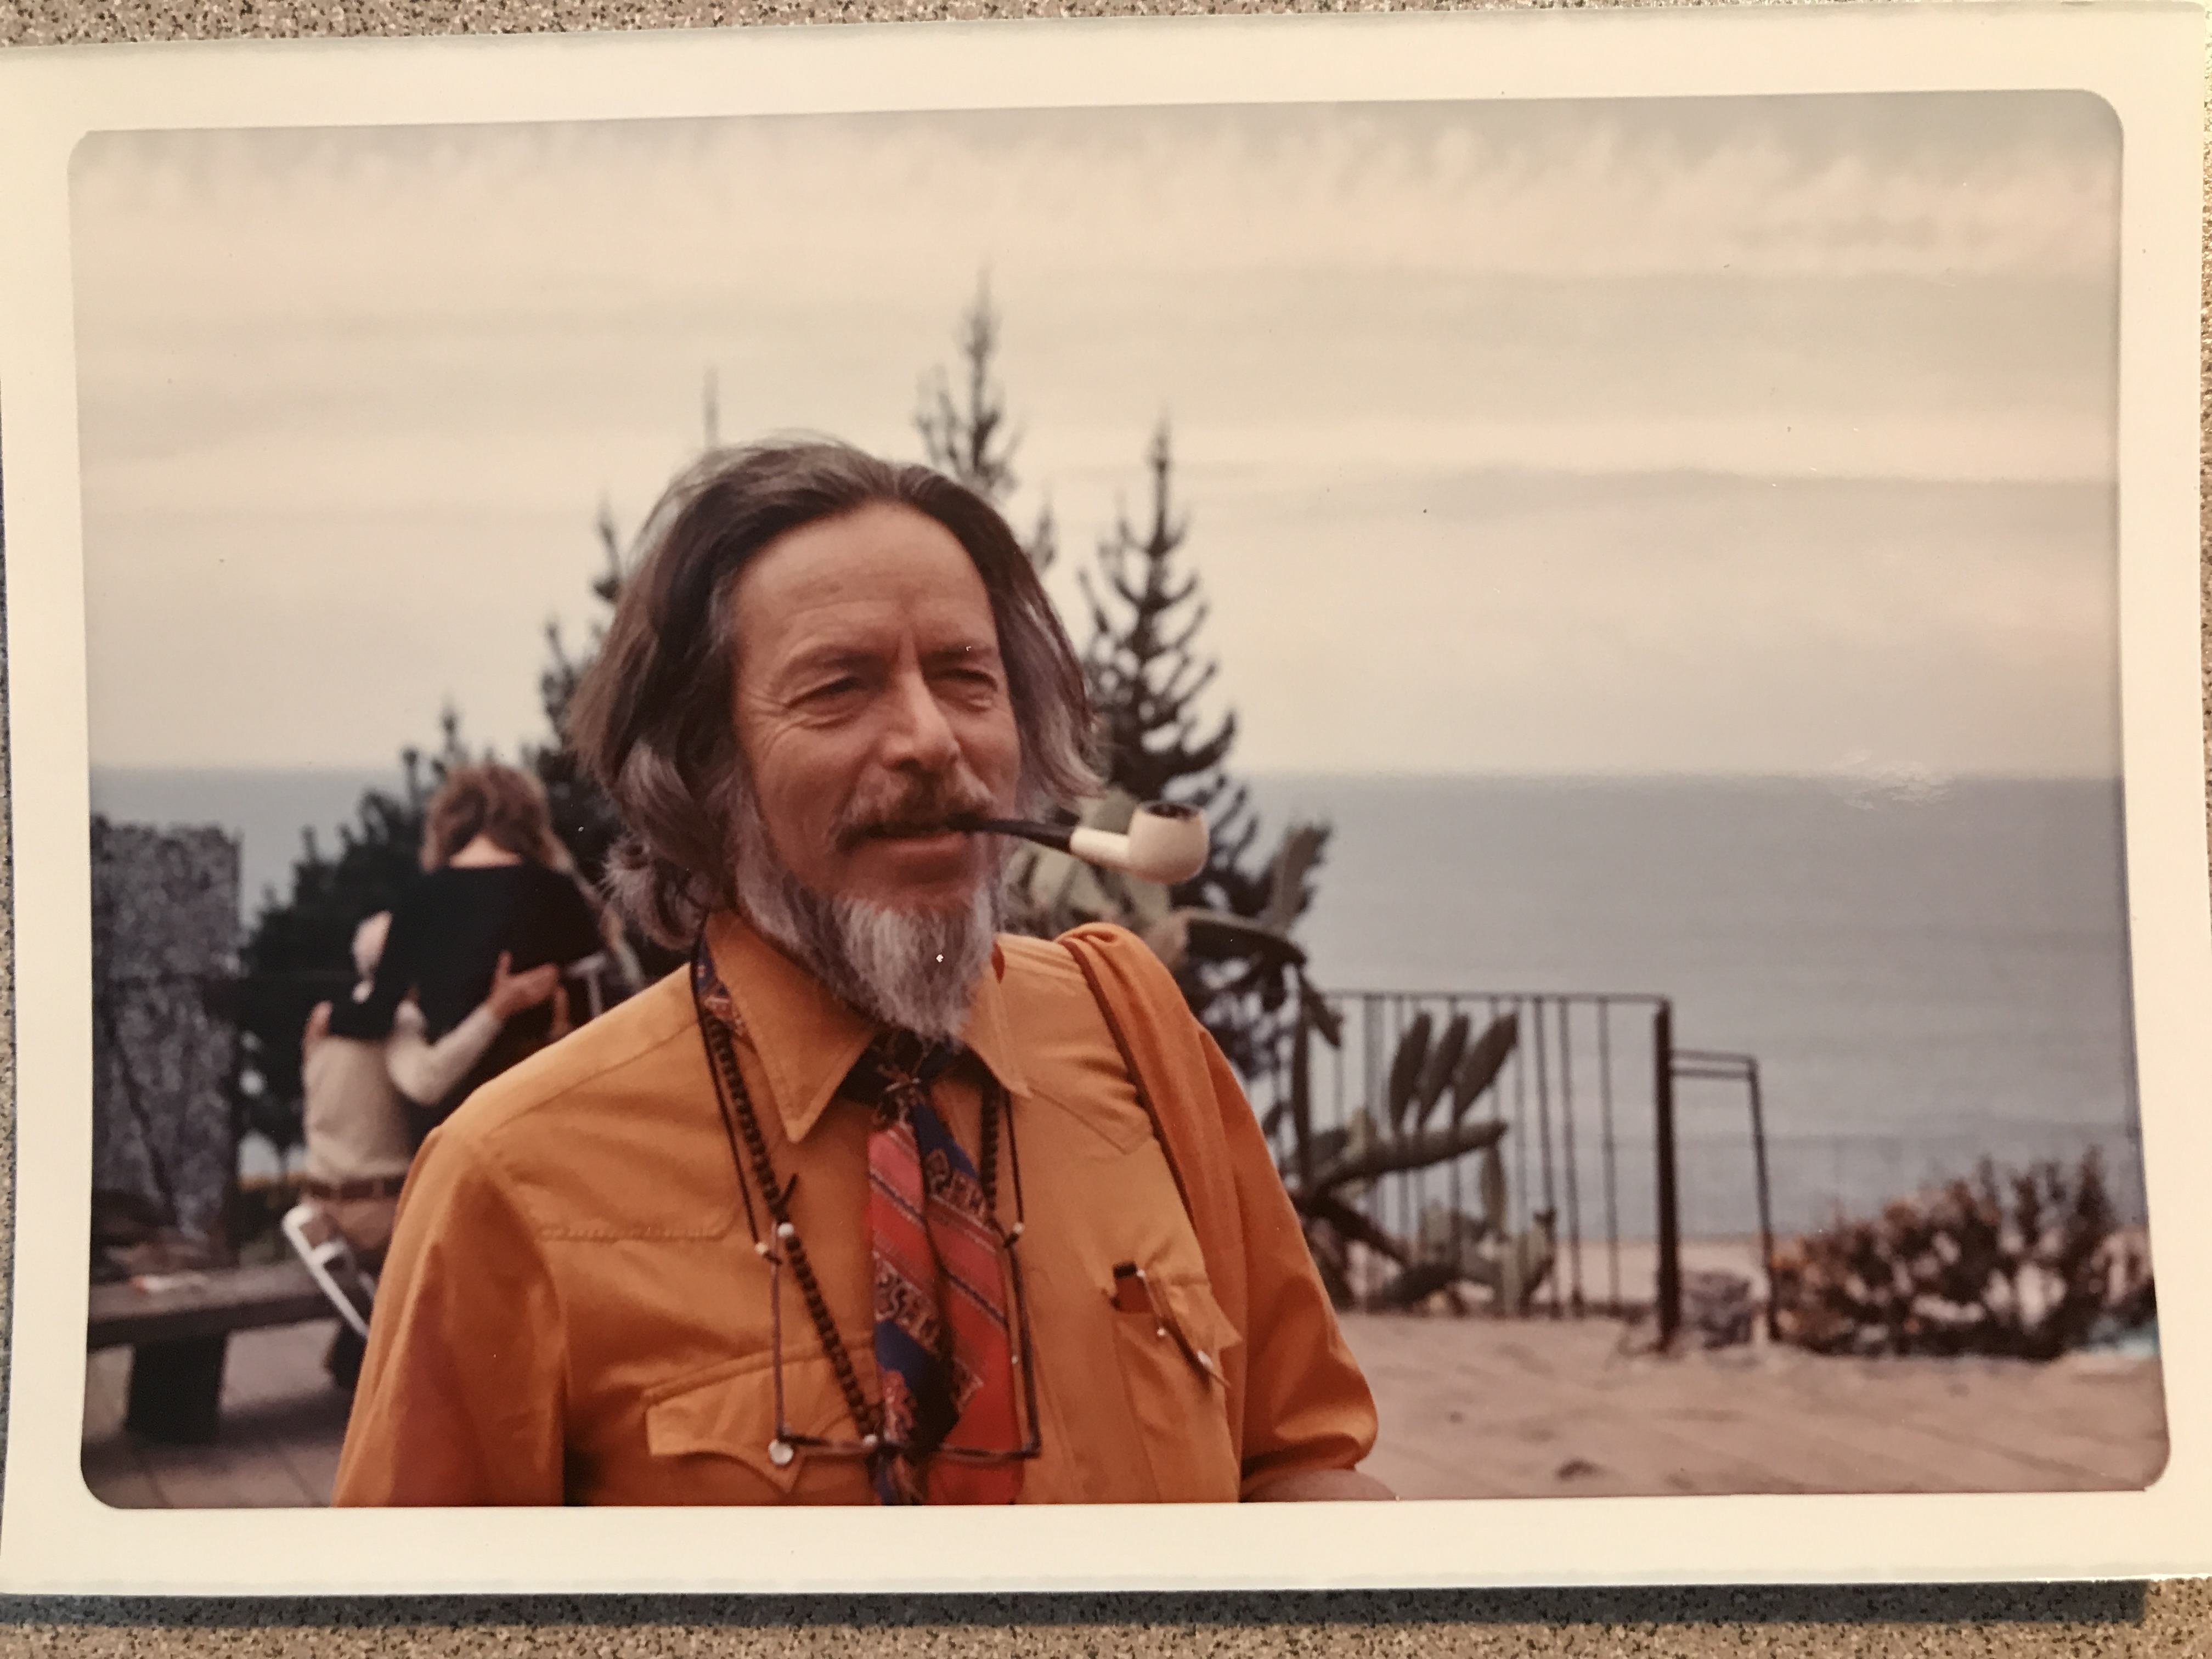 A photograph of Alan Watts smoking a pipe in Esalen, California in the 1960s or 70s